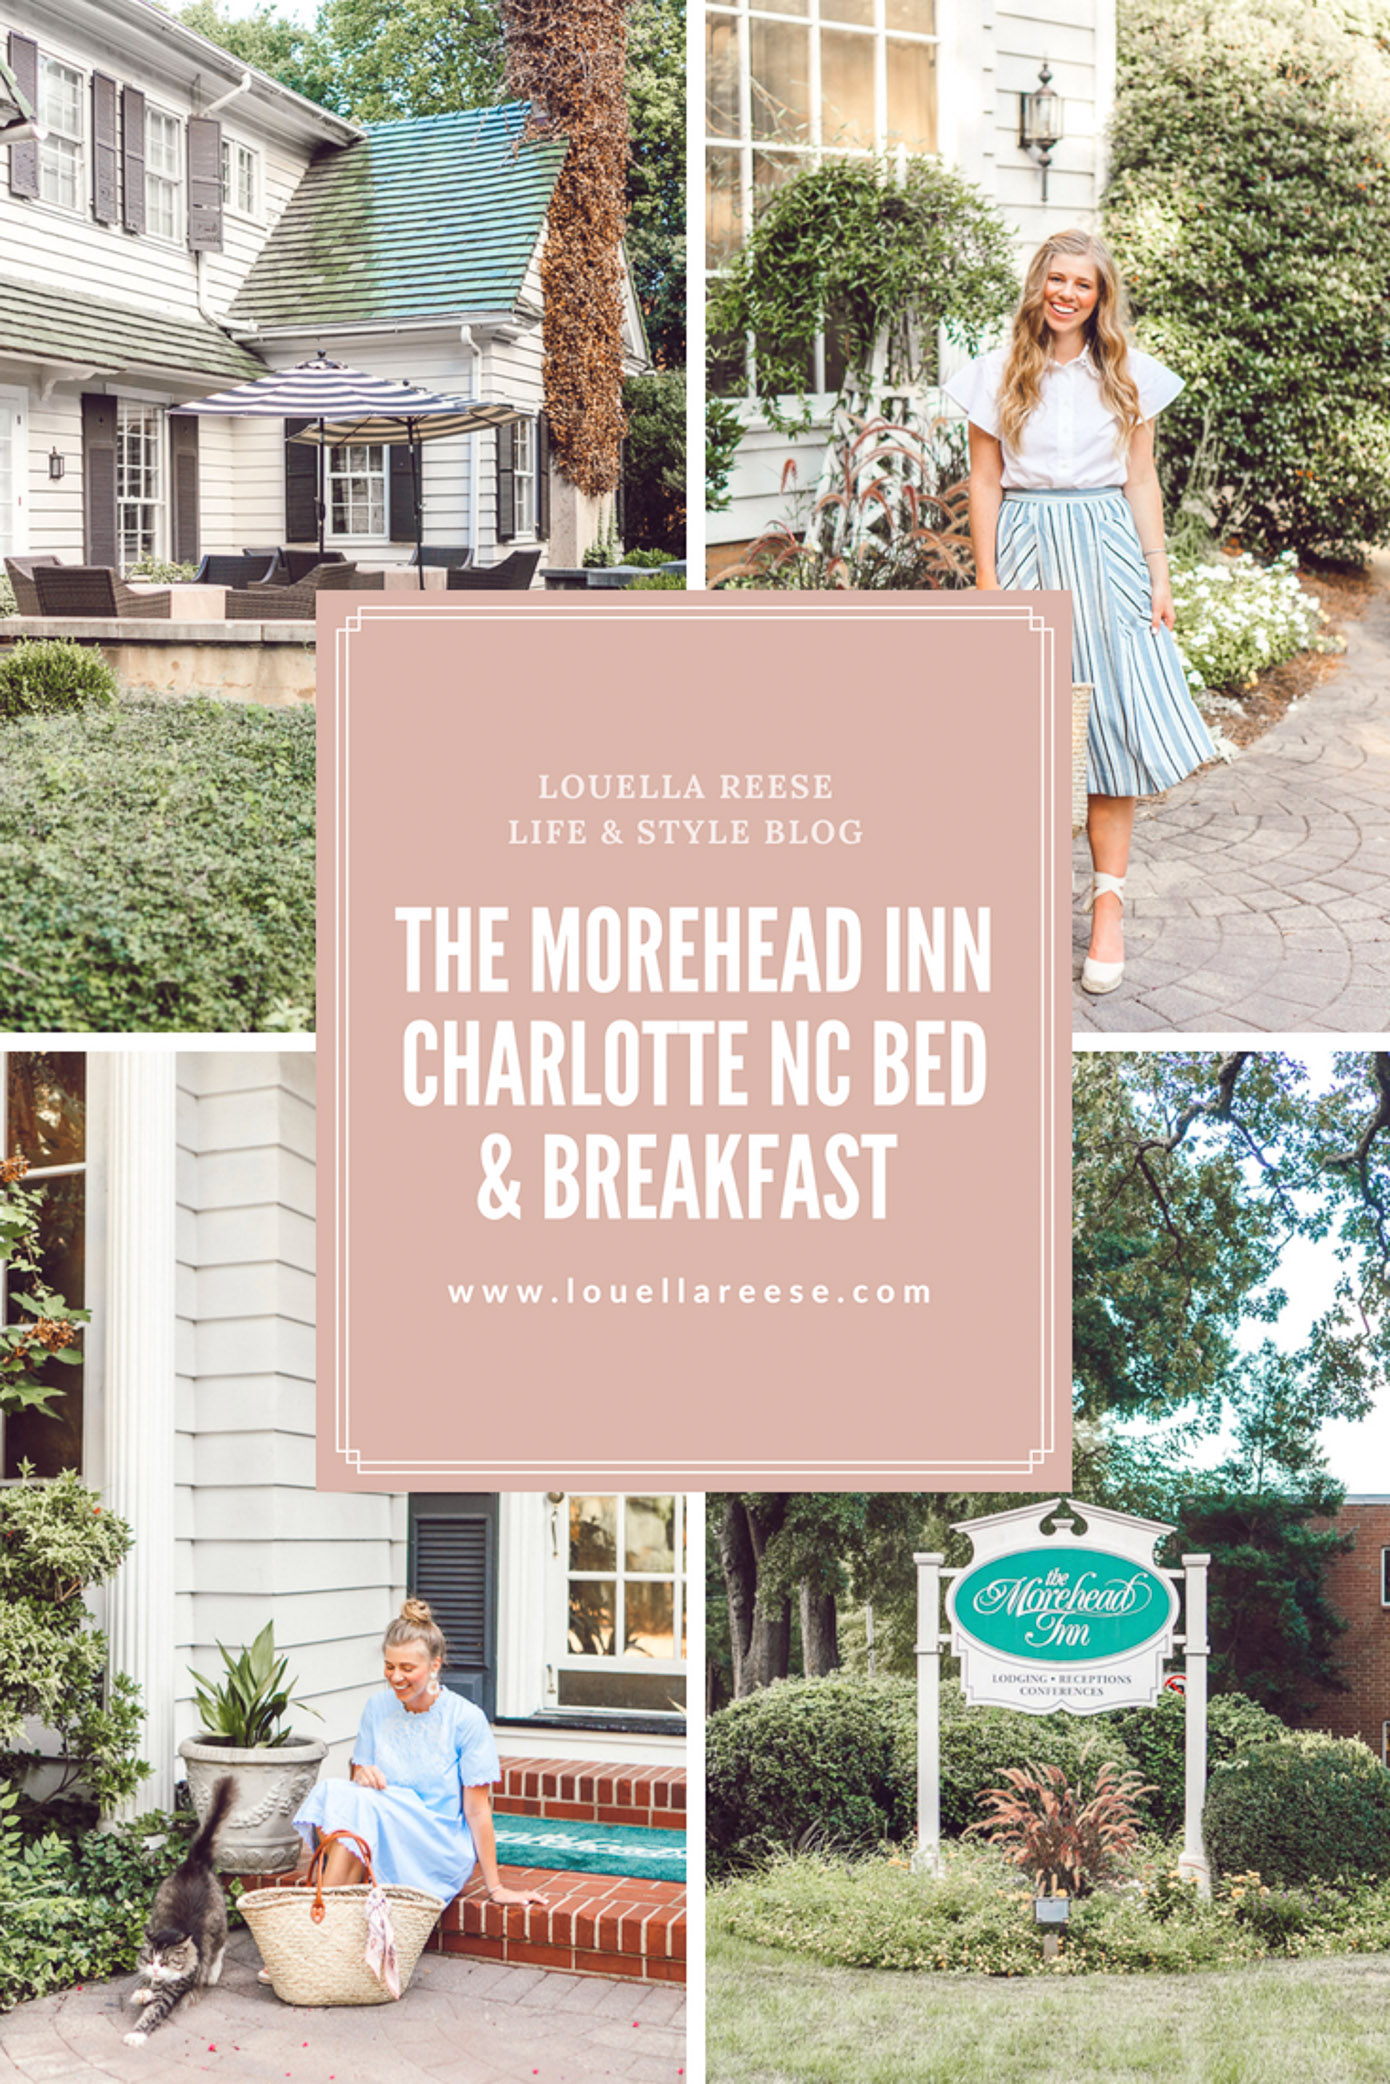 Where to Stay in Charlotte NC | The Morehead Inn Charlotte North Carolina Bed & Breakfast featured on Louella Reese